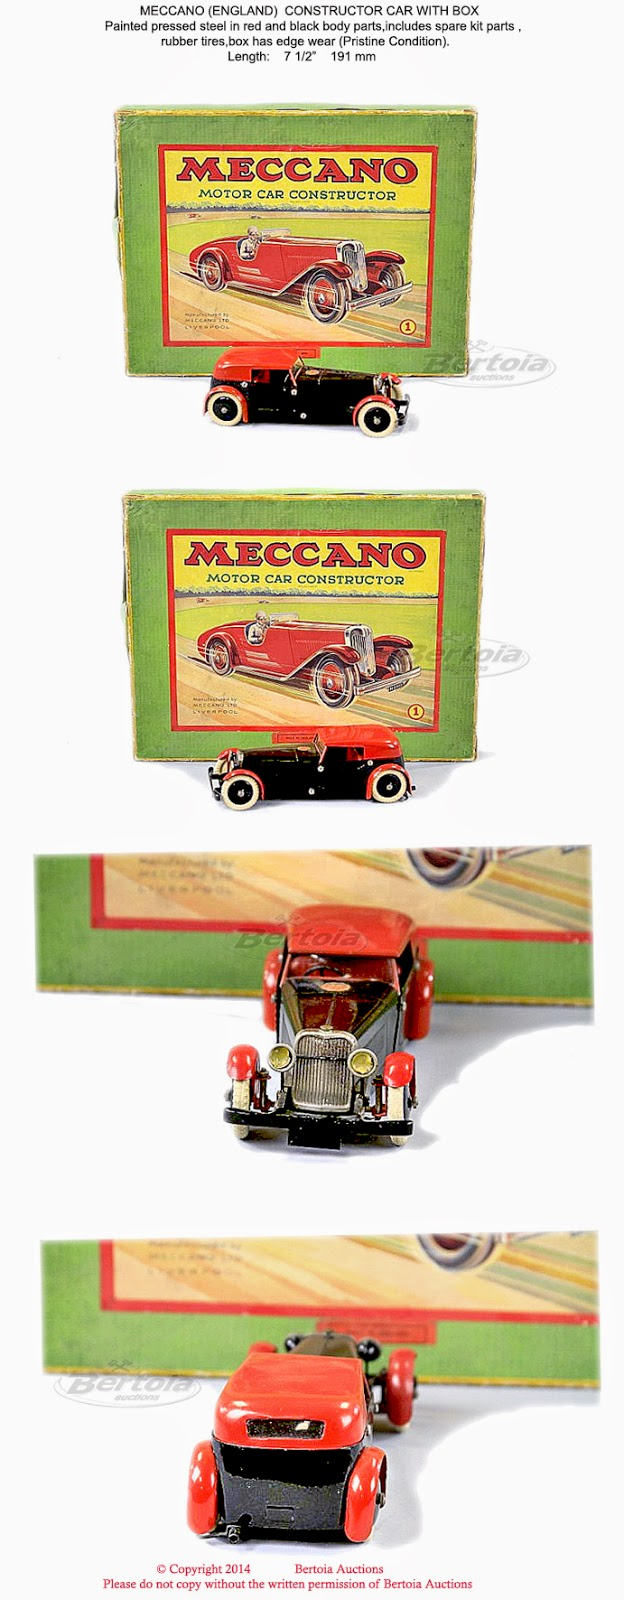 Old Antique Toys April 2014 Control Your Meccano Models Or Anything Else From Windows Pc Was Inside The Metallic Windshield Frame